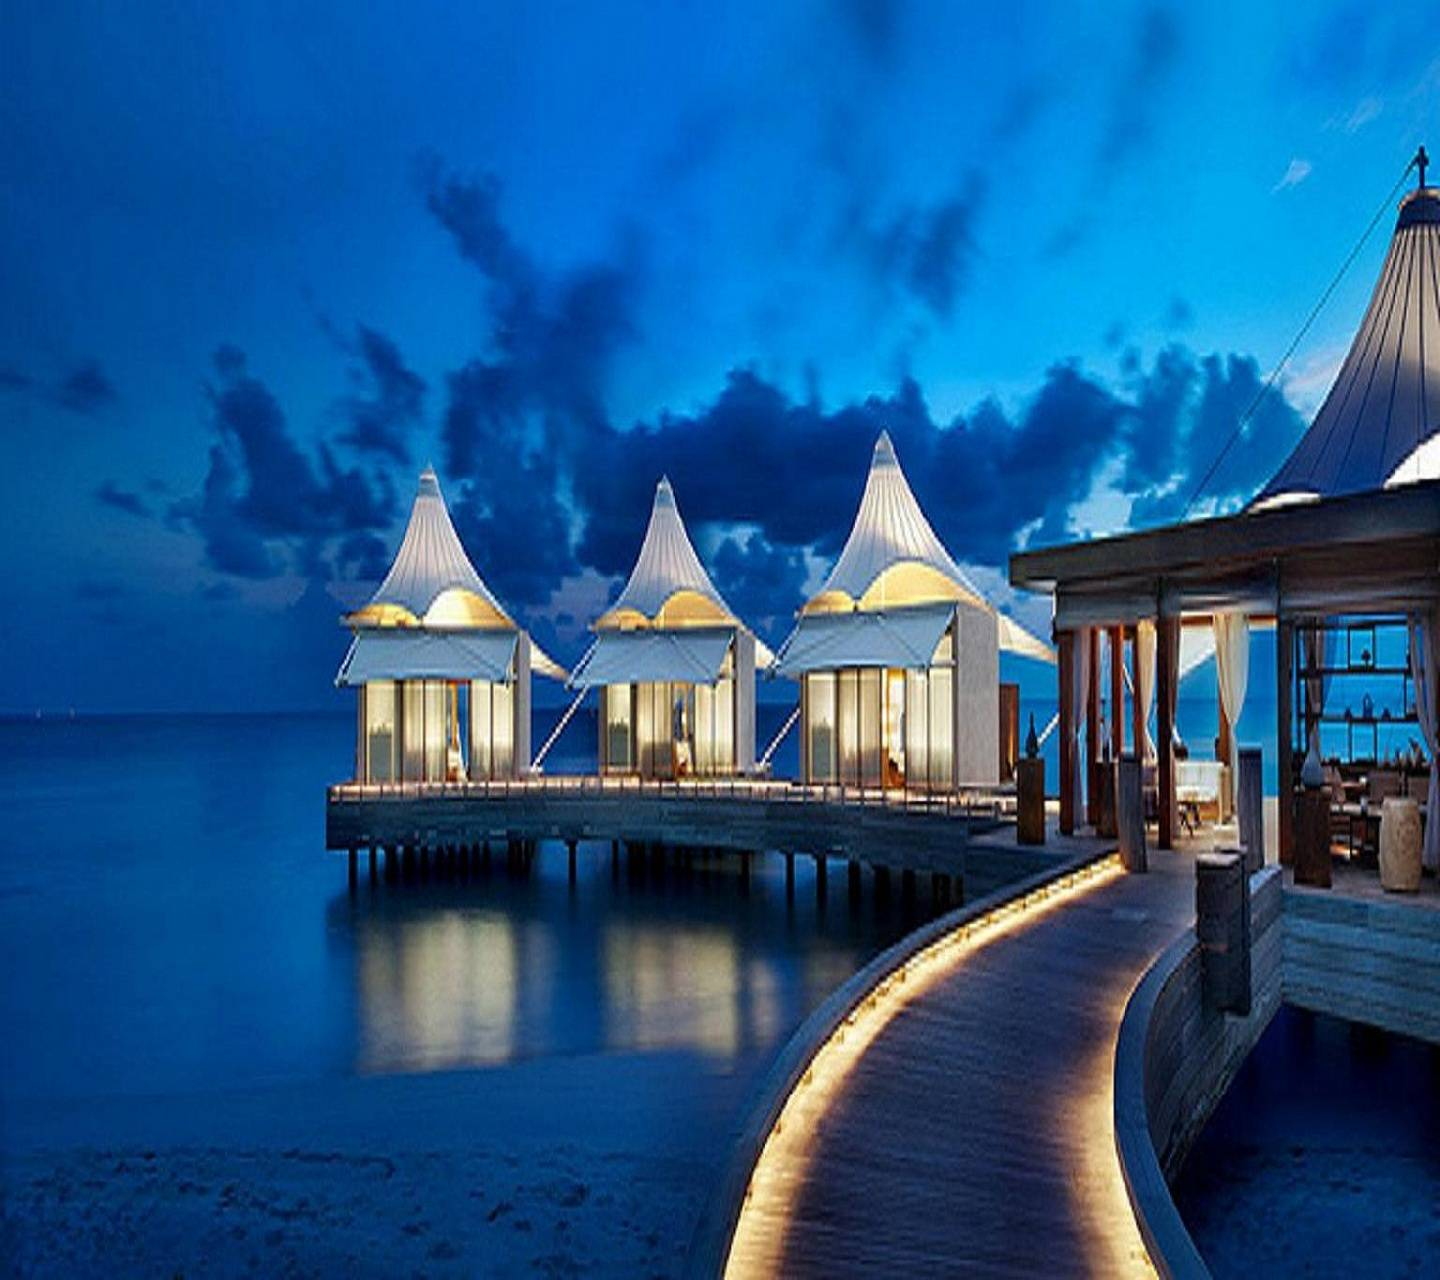 Maldives Night Wallpaper by ____S - 7d - Free on ZEDGE™